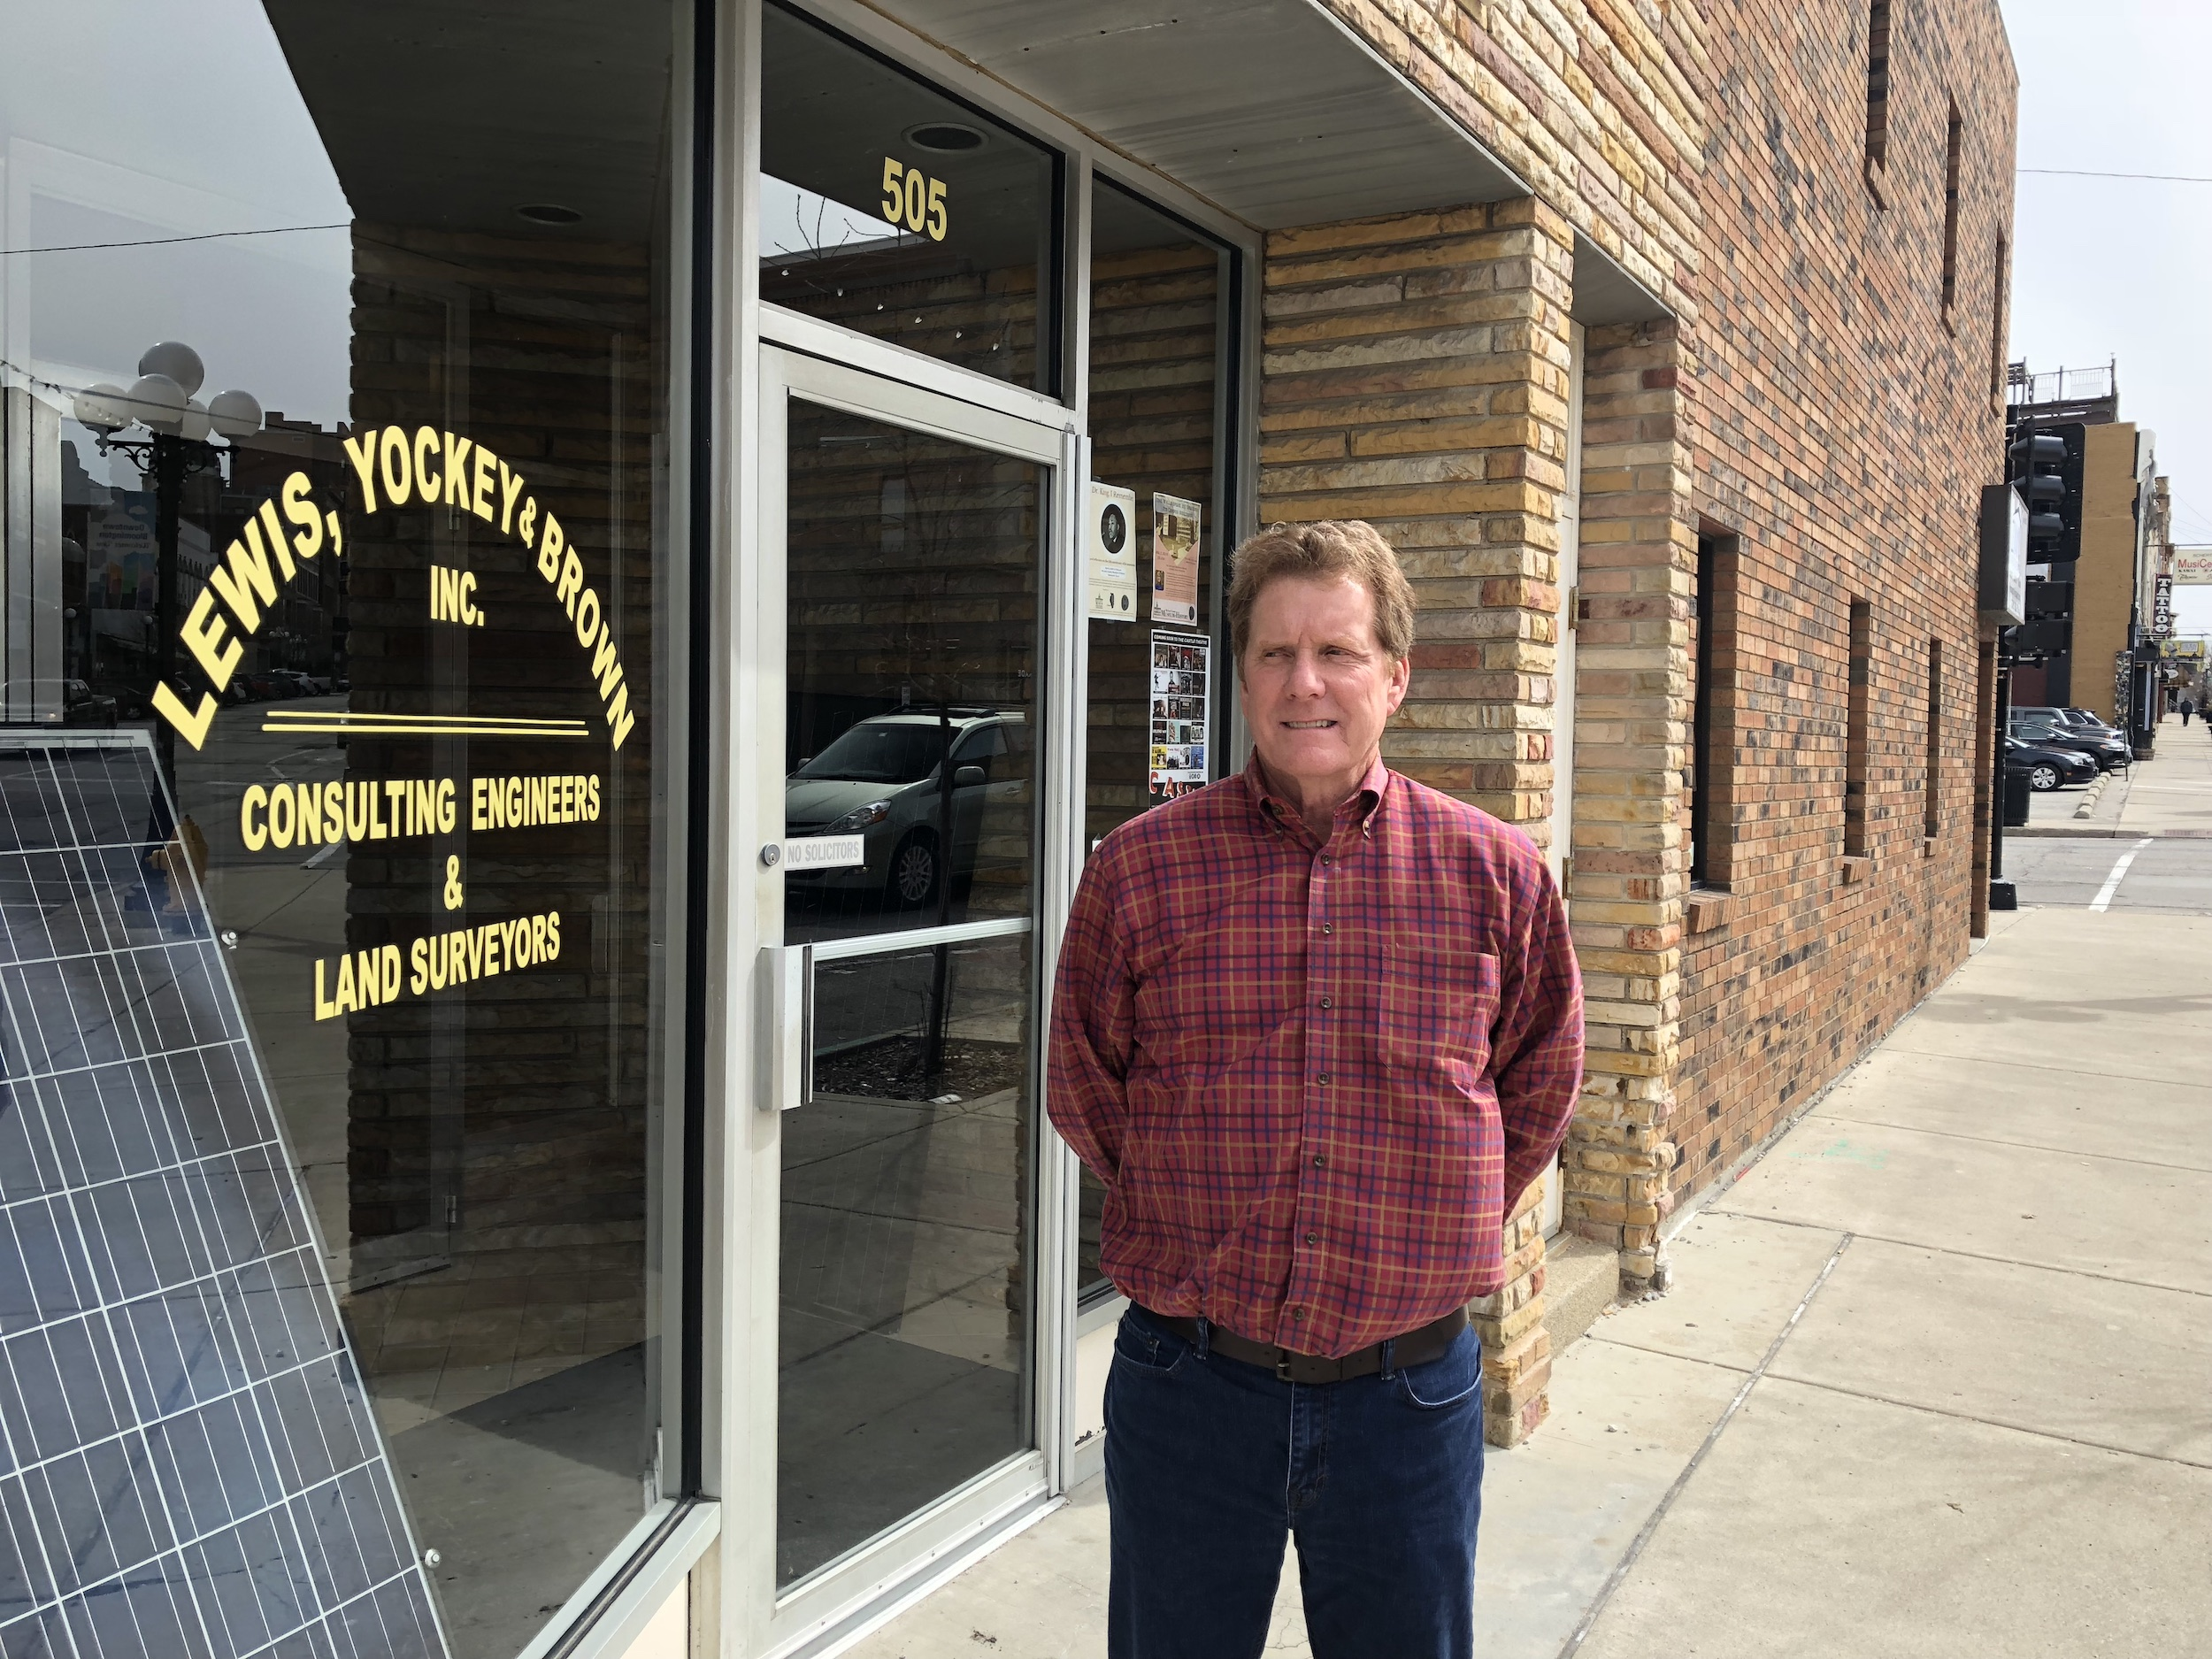 David Brown, President of Lewis, Yockey & Brown, Inc., poses outside the civil engineering firm's office,which has been in the same location since 1983. (Image credit: Erik Prenzler)